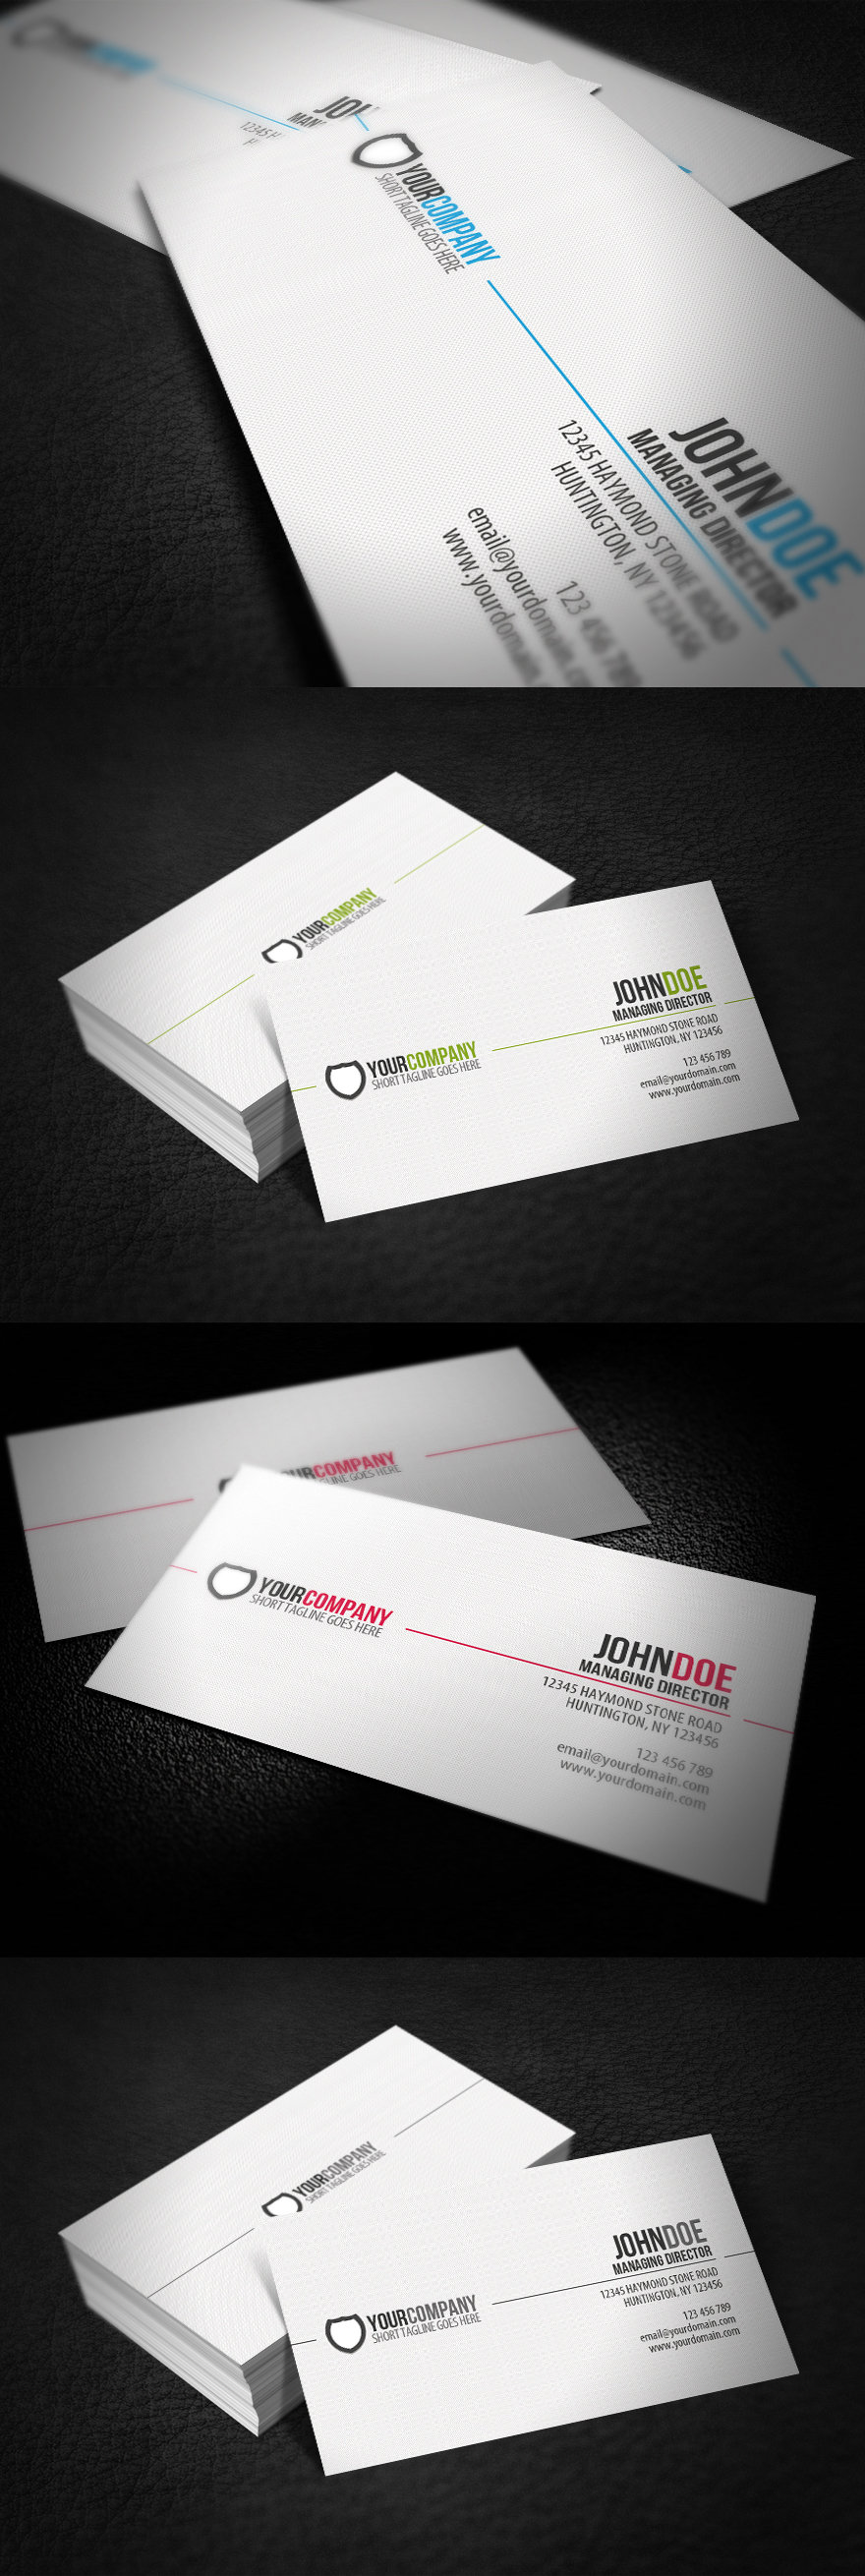 Simple Professional Business Card by glenngoh on DeviantArt